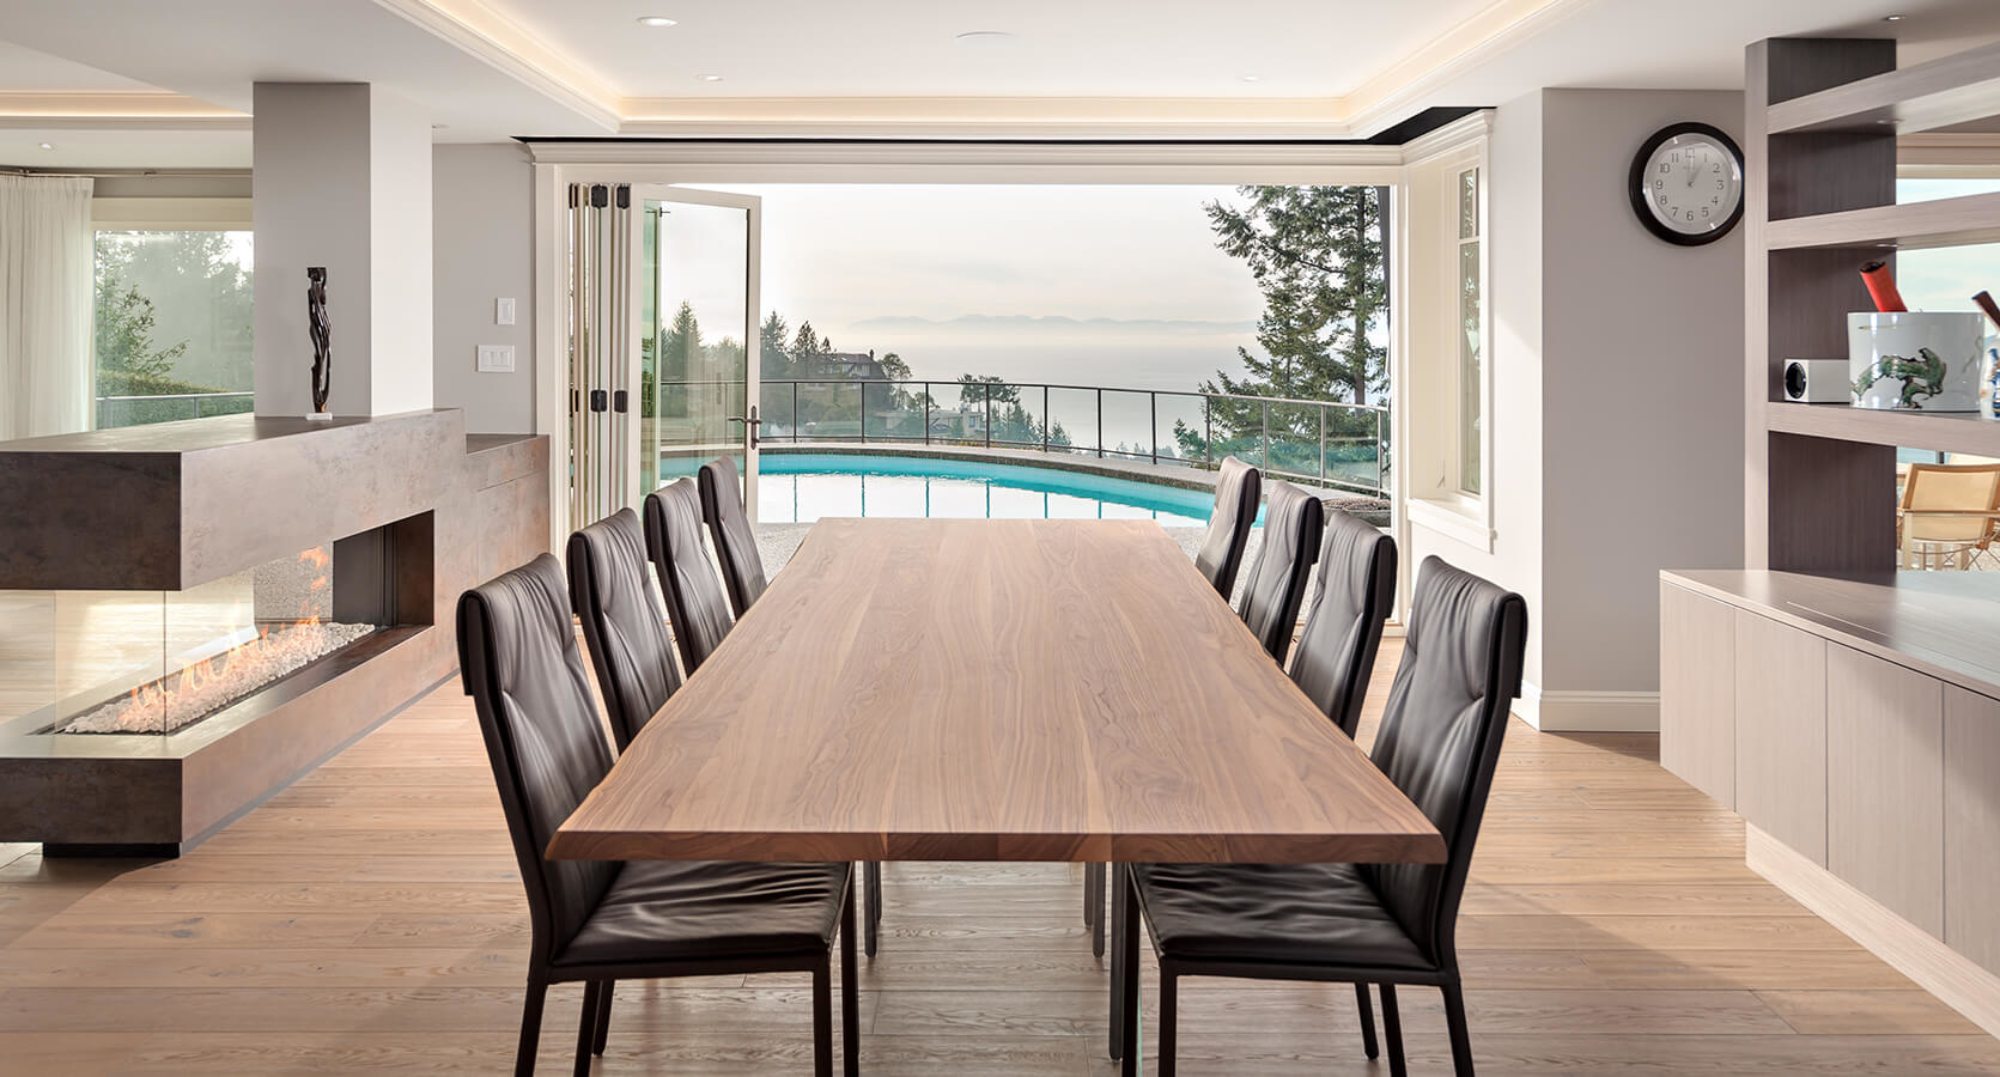 High Quality Home Builder in North Vancouver - Shakespeare Homes - Quality, Expertise, and Craftsmanship